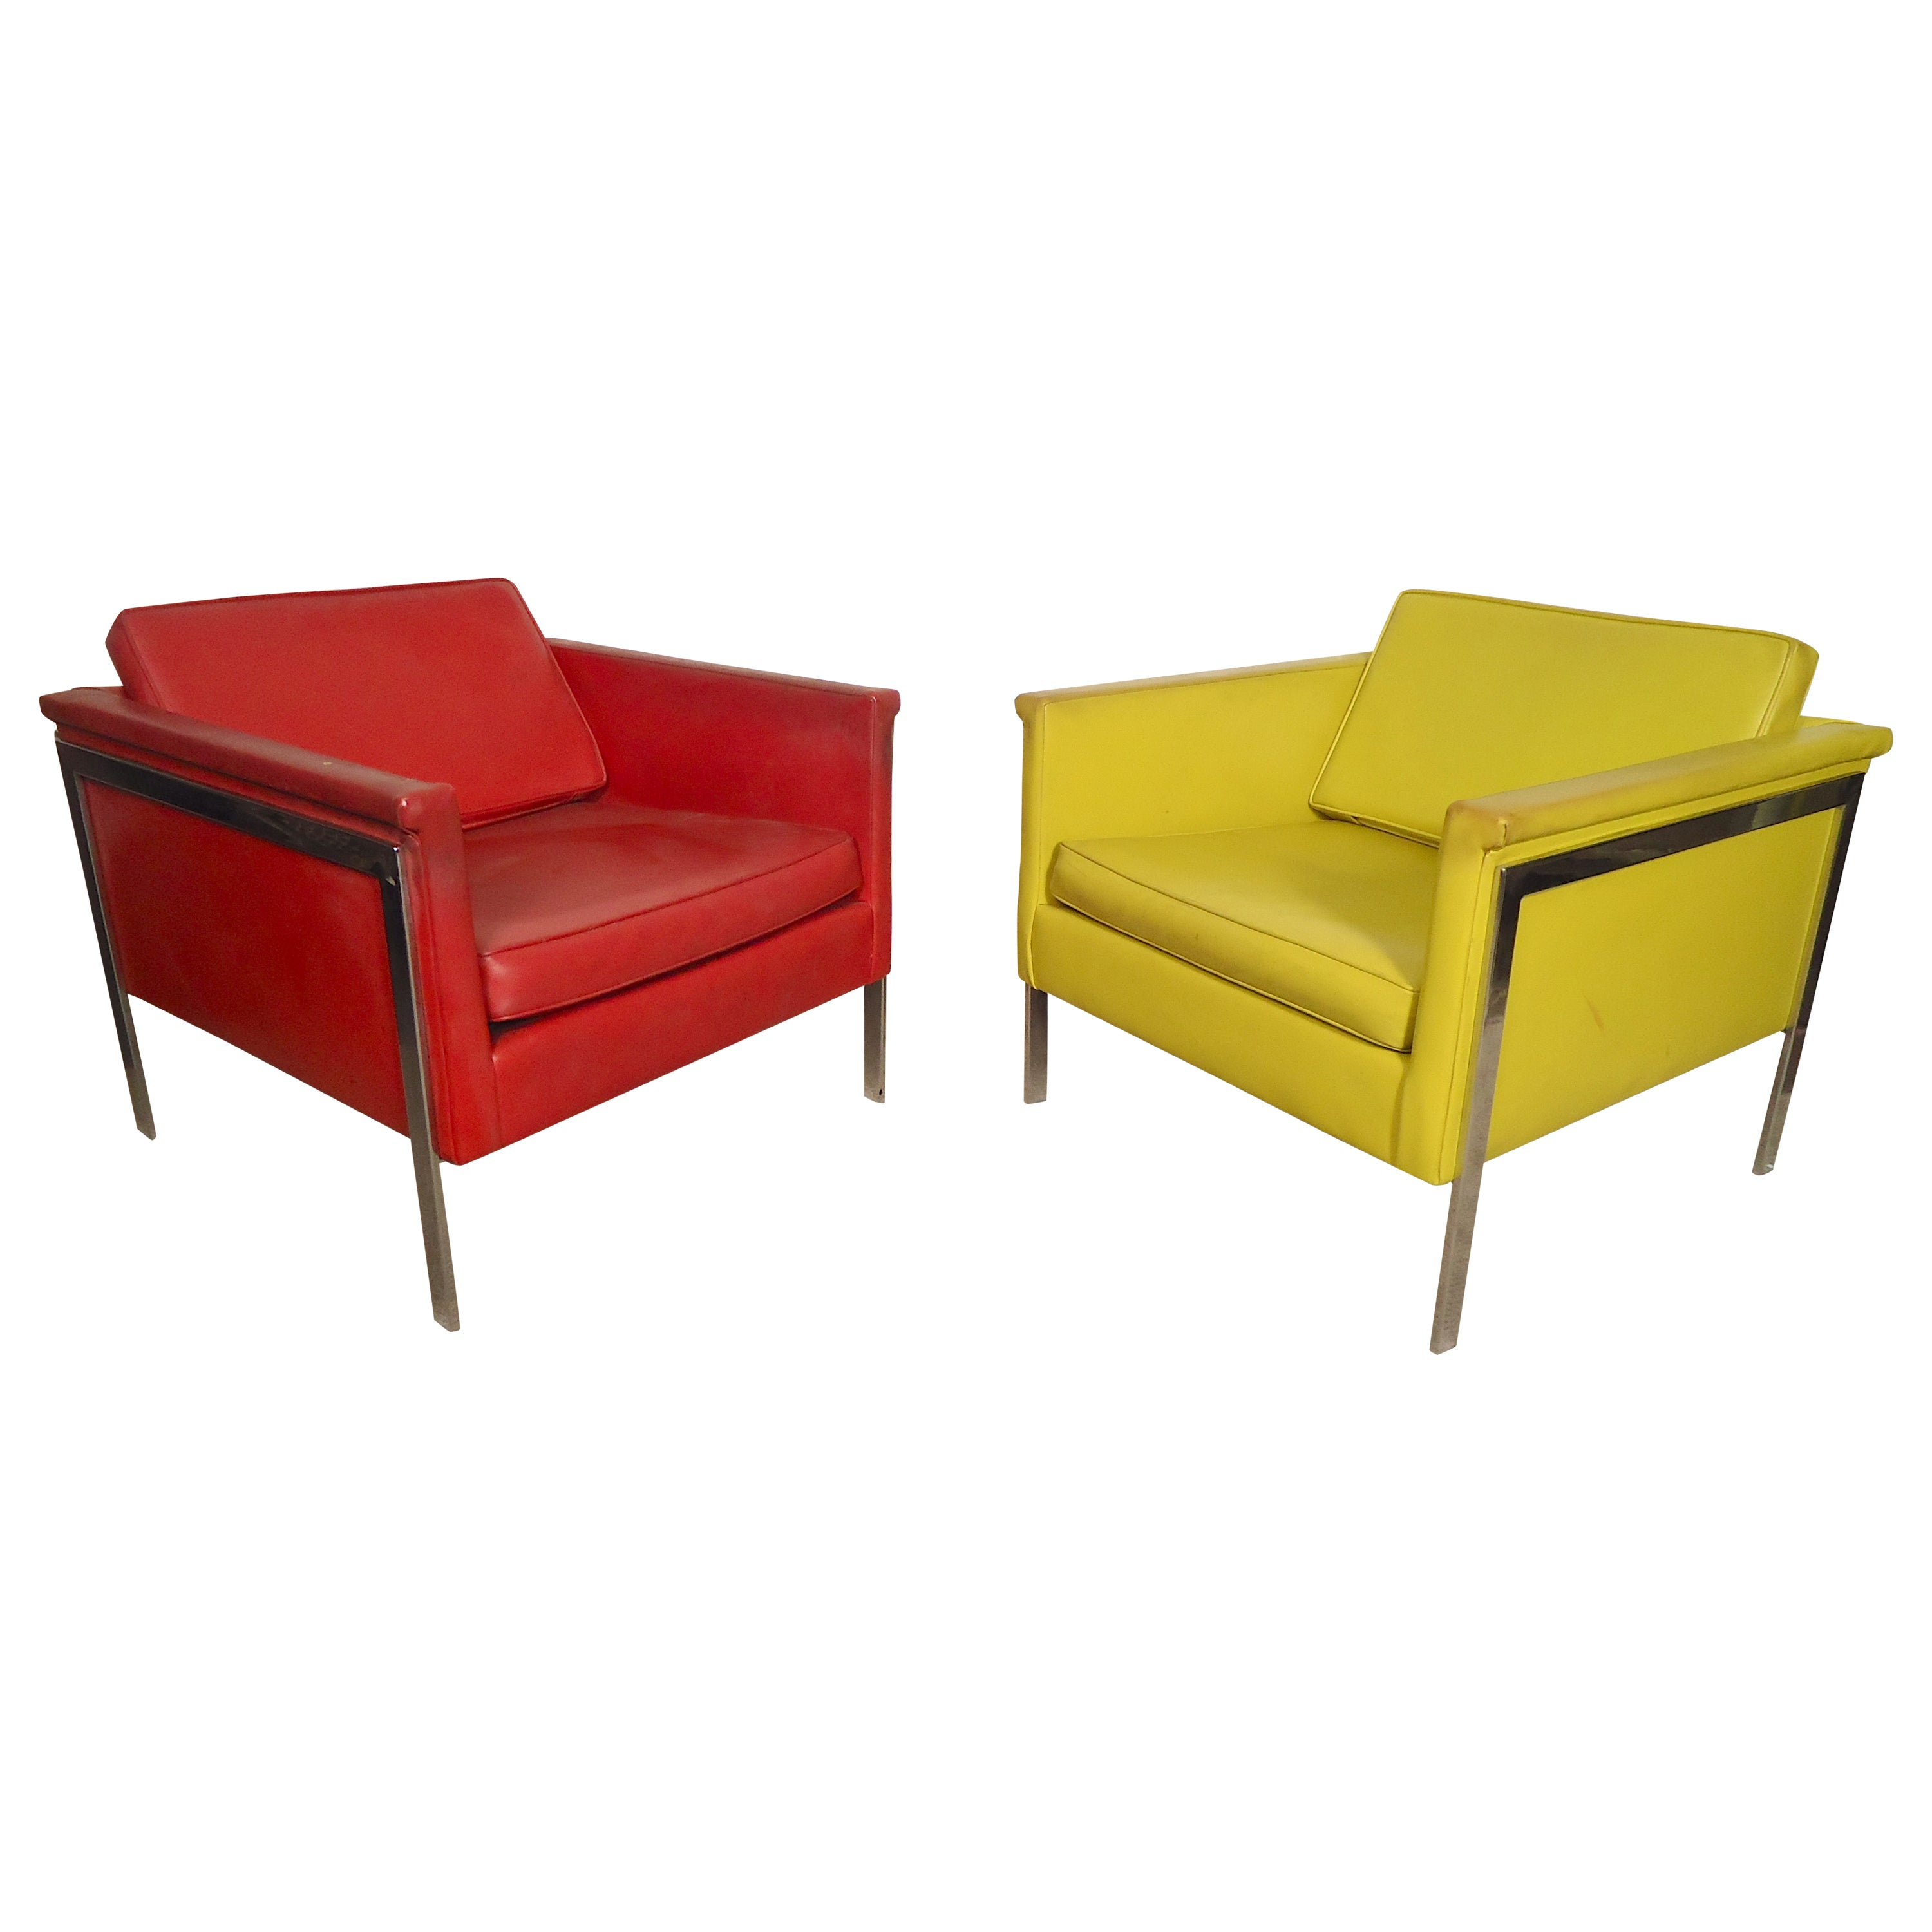 Pair Mid-Century Modern Lounge Chairs, Yellow and Red